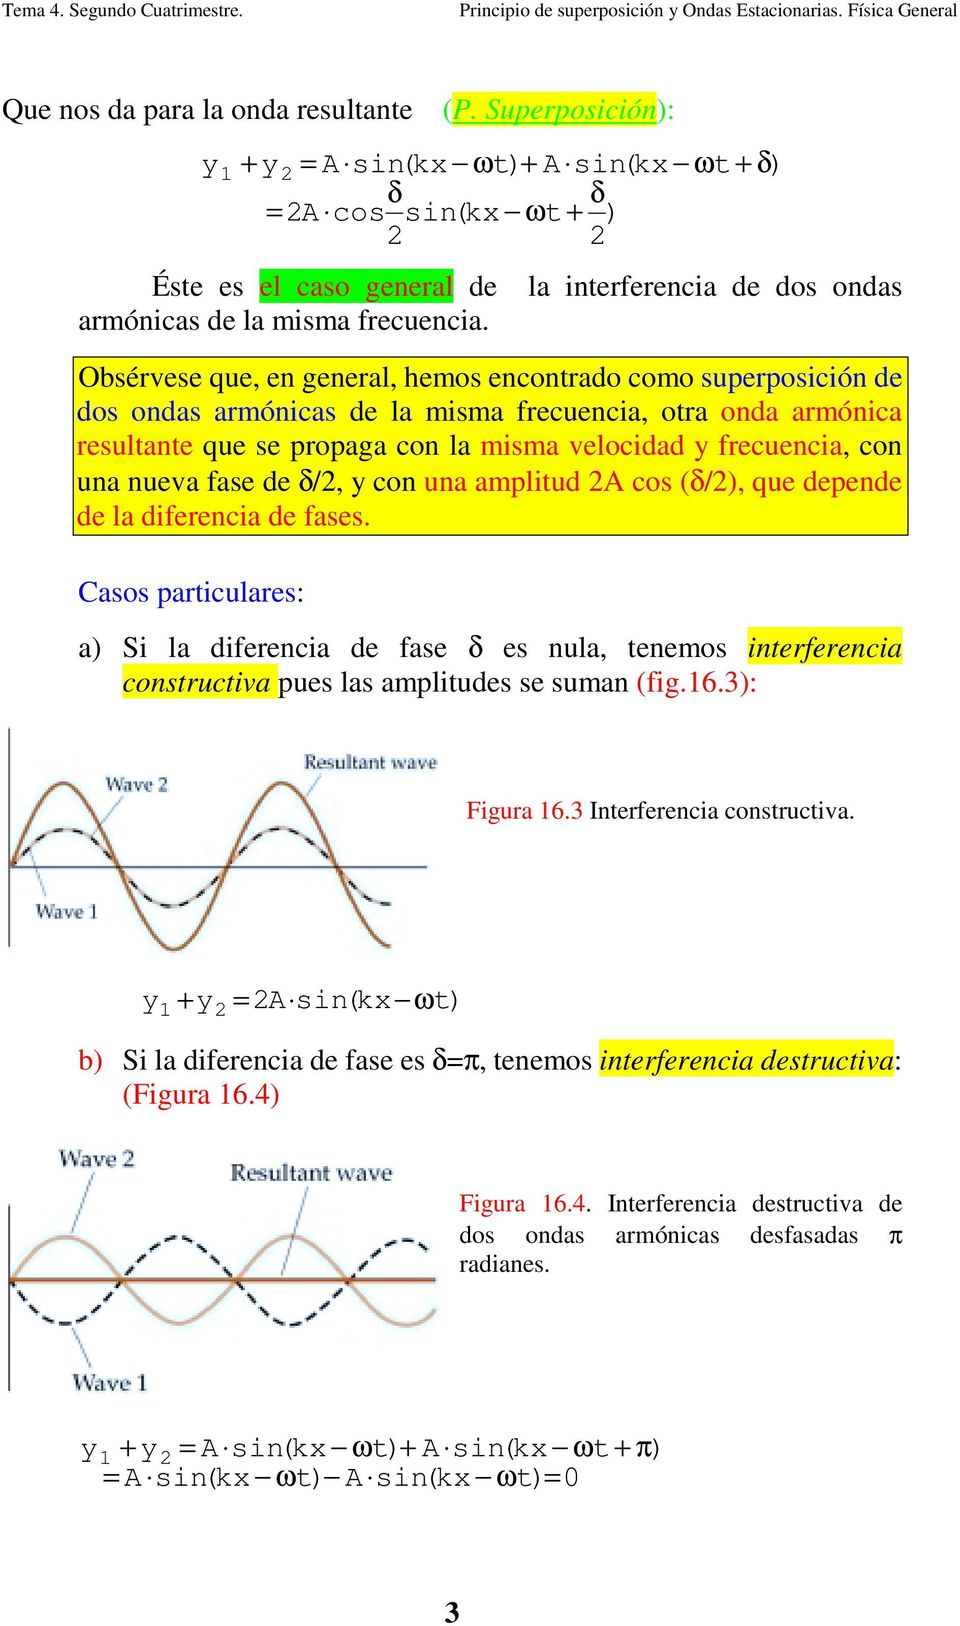 δ/, y co ua amplitud A cos (δ/), que depede de la diferecia de fases. Casos particulares: a) Si la diferecia de fase δ es ula, teemos iterferecia costructiva pues las amplitudes se suma (fig.6.